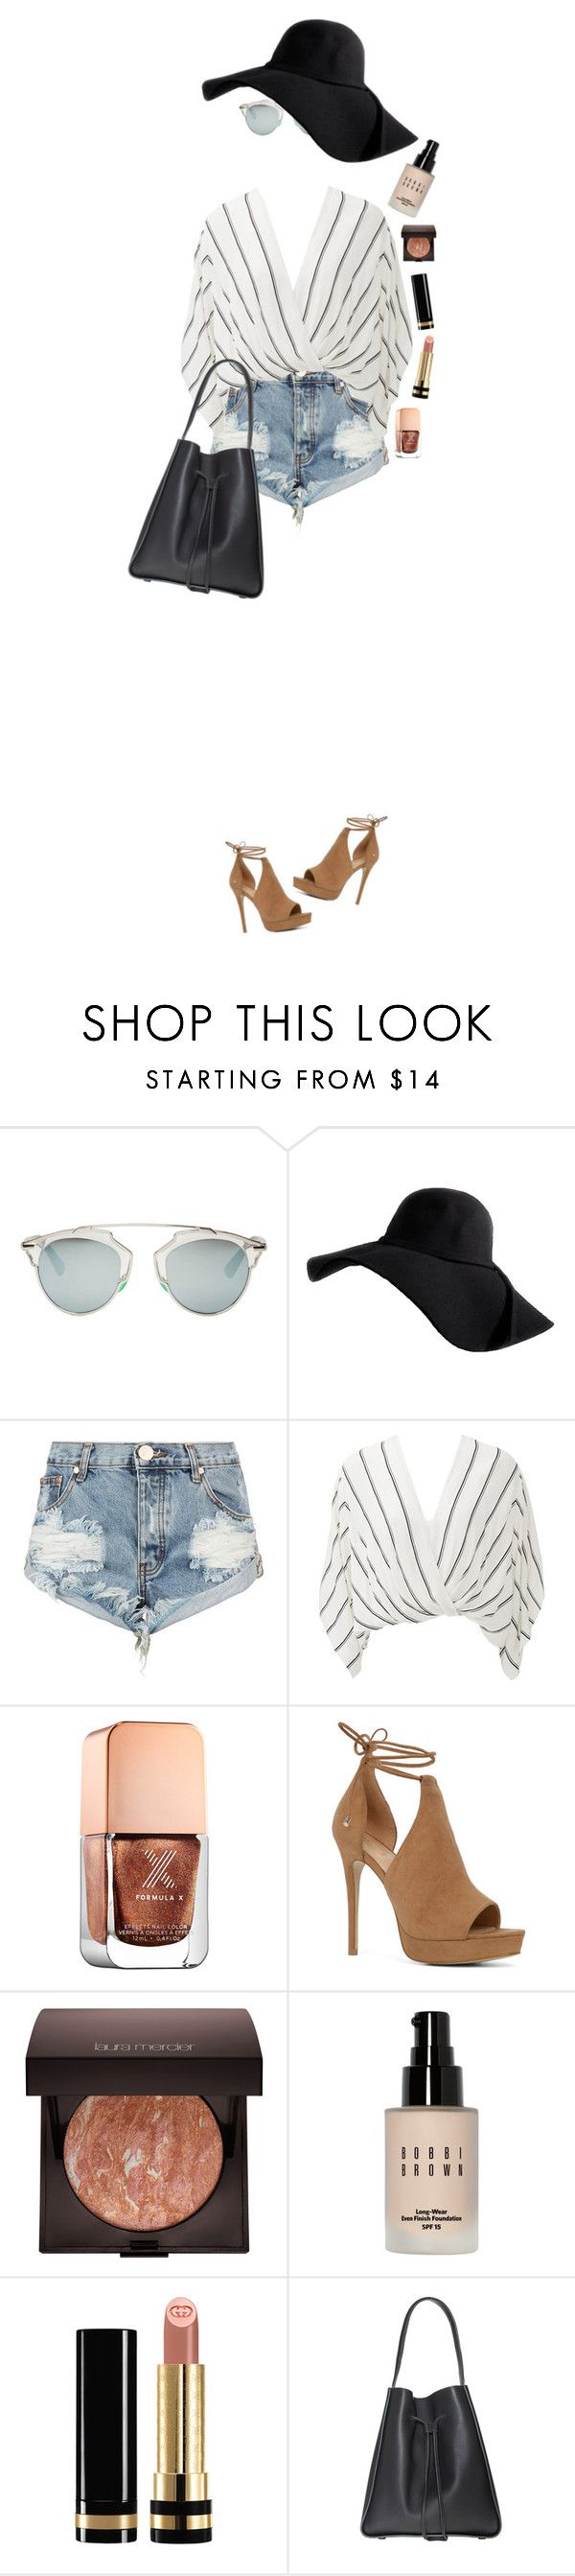 """Pack and Go: Mexico City"" by xo-kallio ❤ liked on Polyvore featuring Christian Dior, One Teaspoon, Free People, Formula X, ALDO, Laura Mercier, Bobbi Brown Cosmetics, Gucci, mexico and vacation"